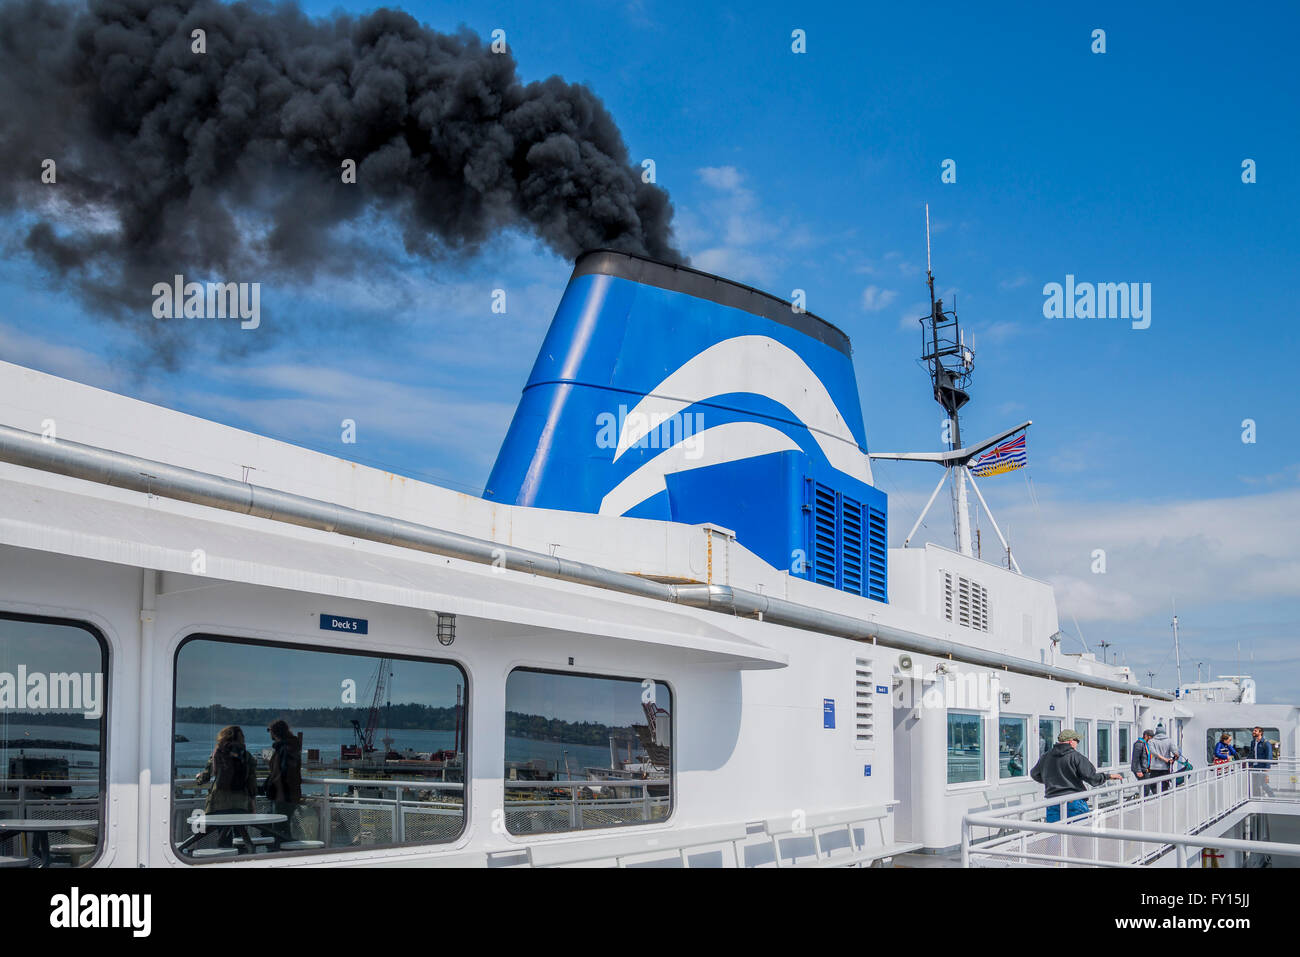 Black smoke from ship's funnel  BC Ferry - Stock Image